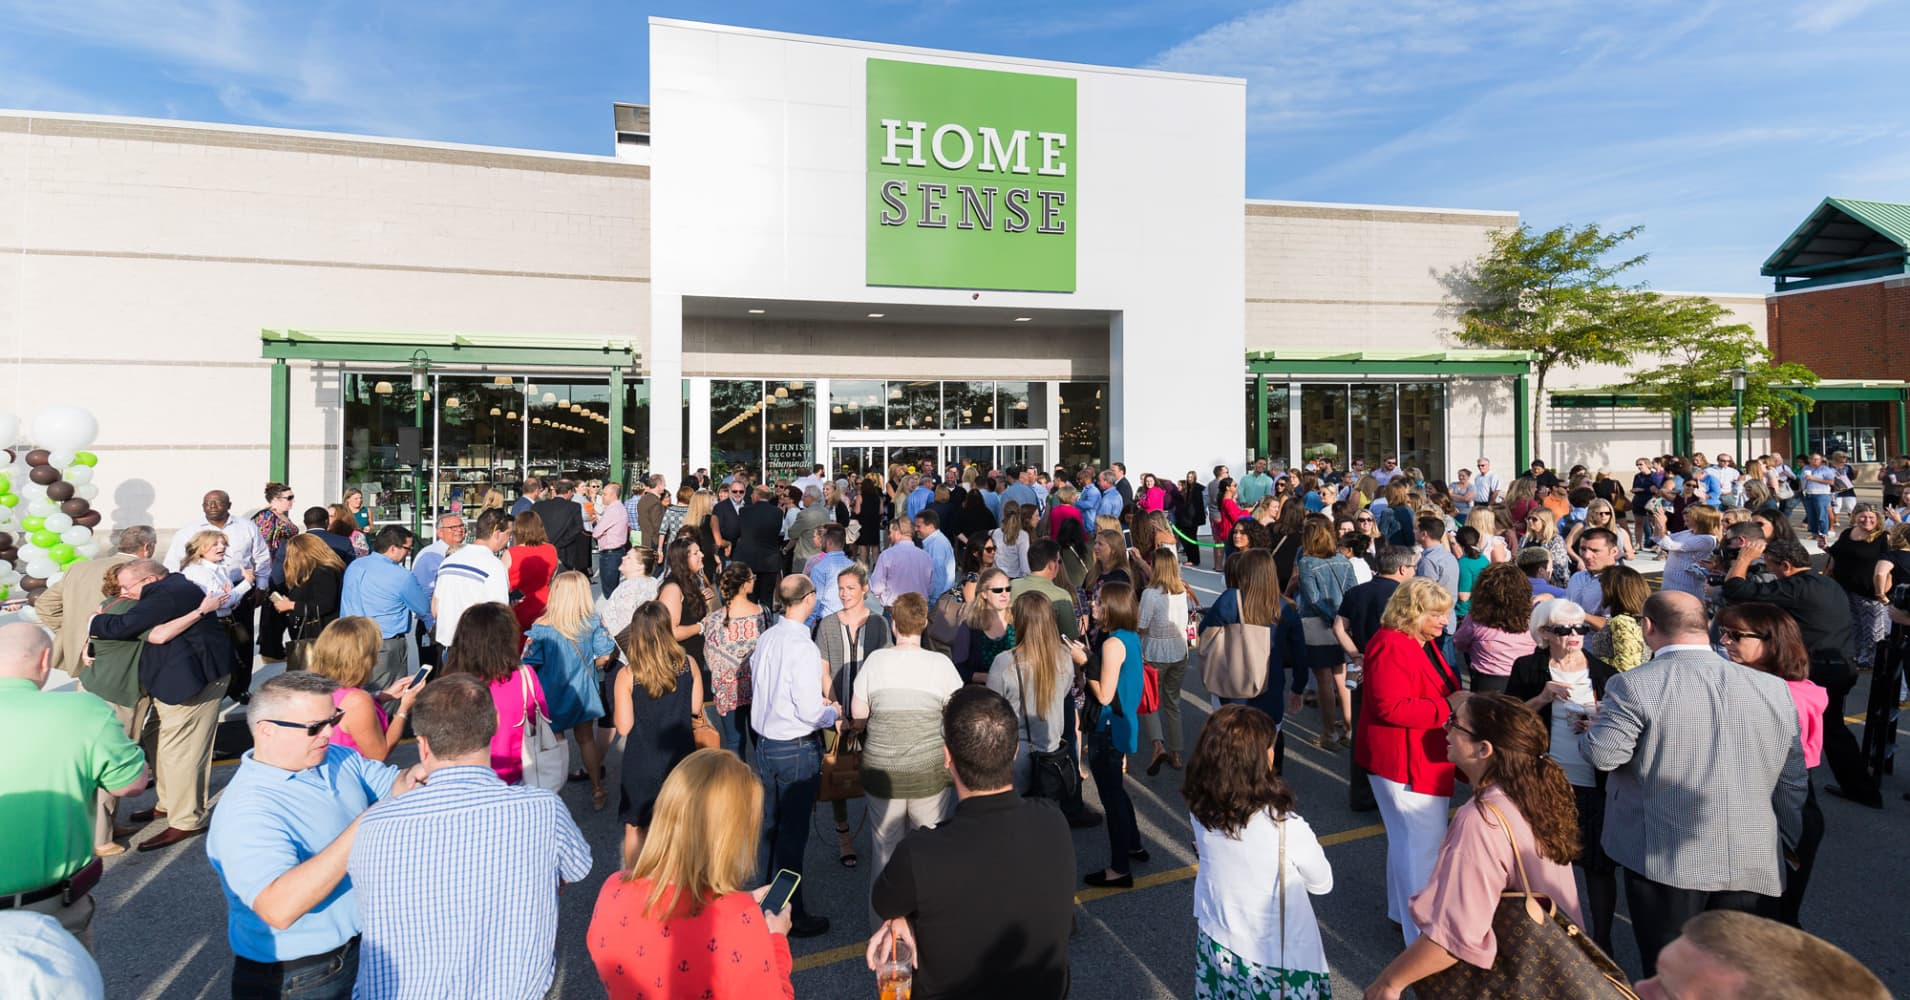 . TJX  the owner of HomeGoods  just opened its first Homesense